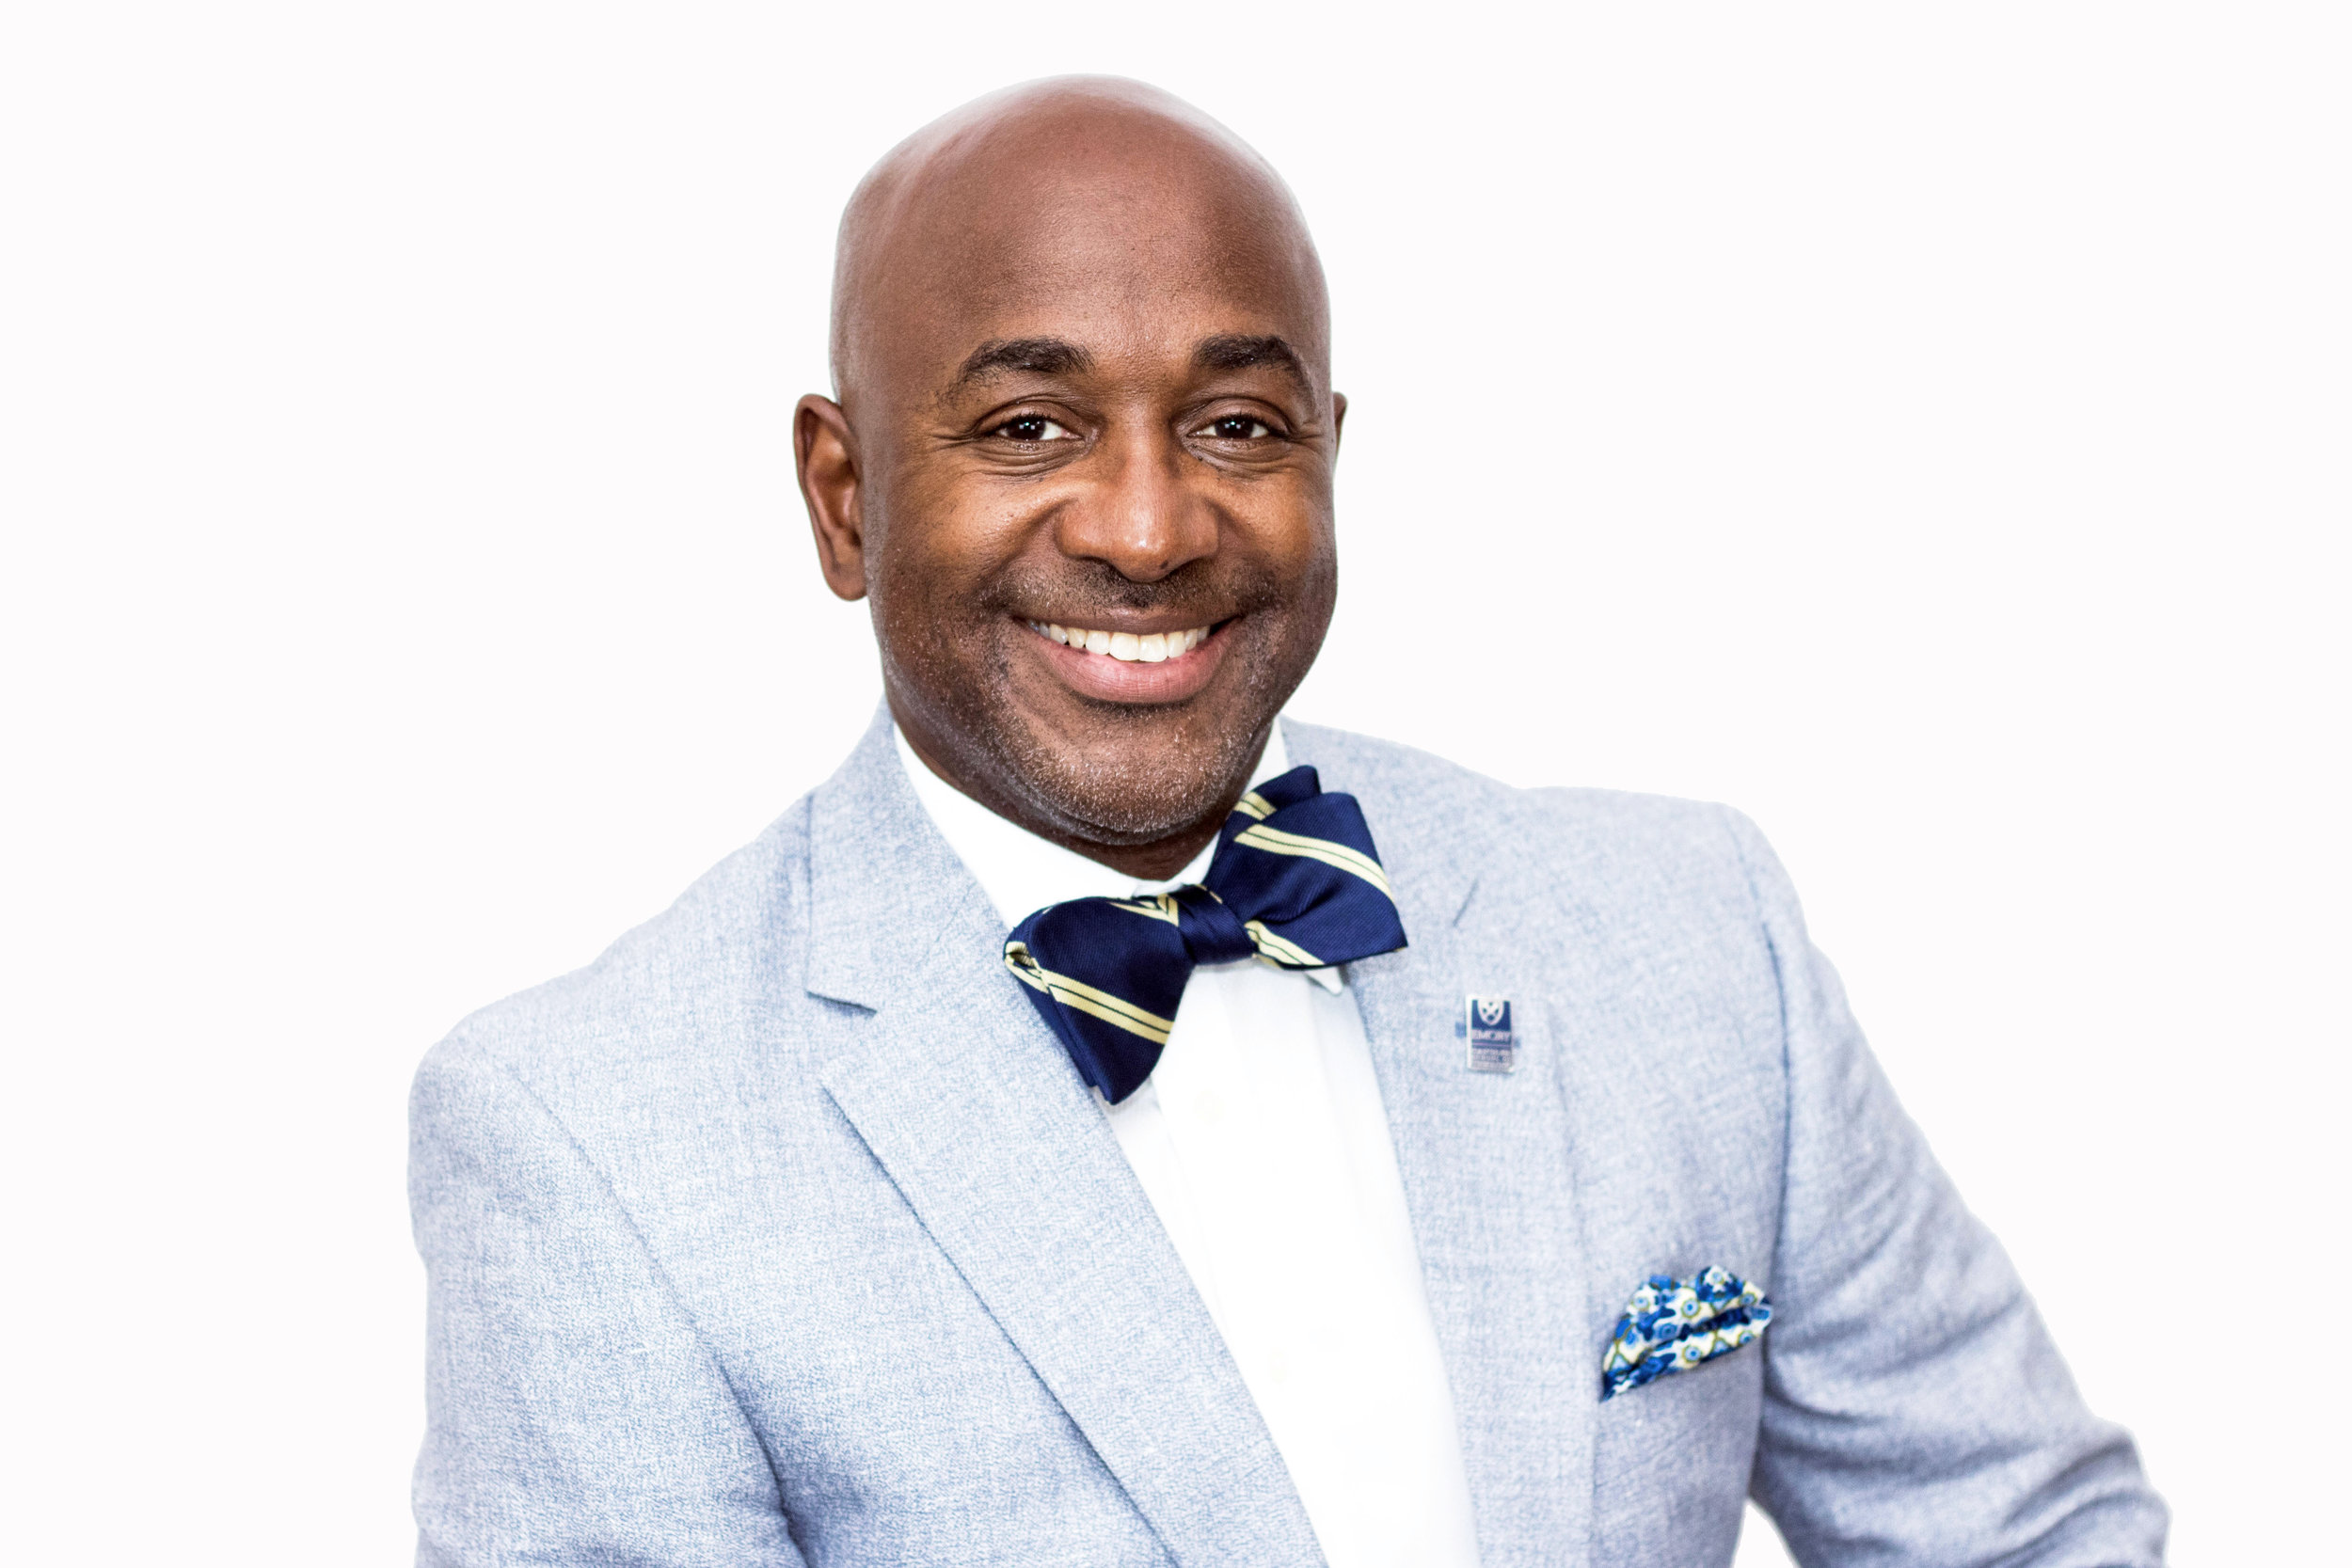 Rev. Elliott Robinson JD, MDiv - Founder & Executive Director - Creative Tension, Inc.